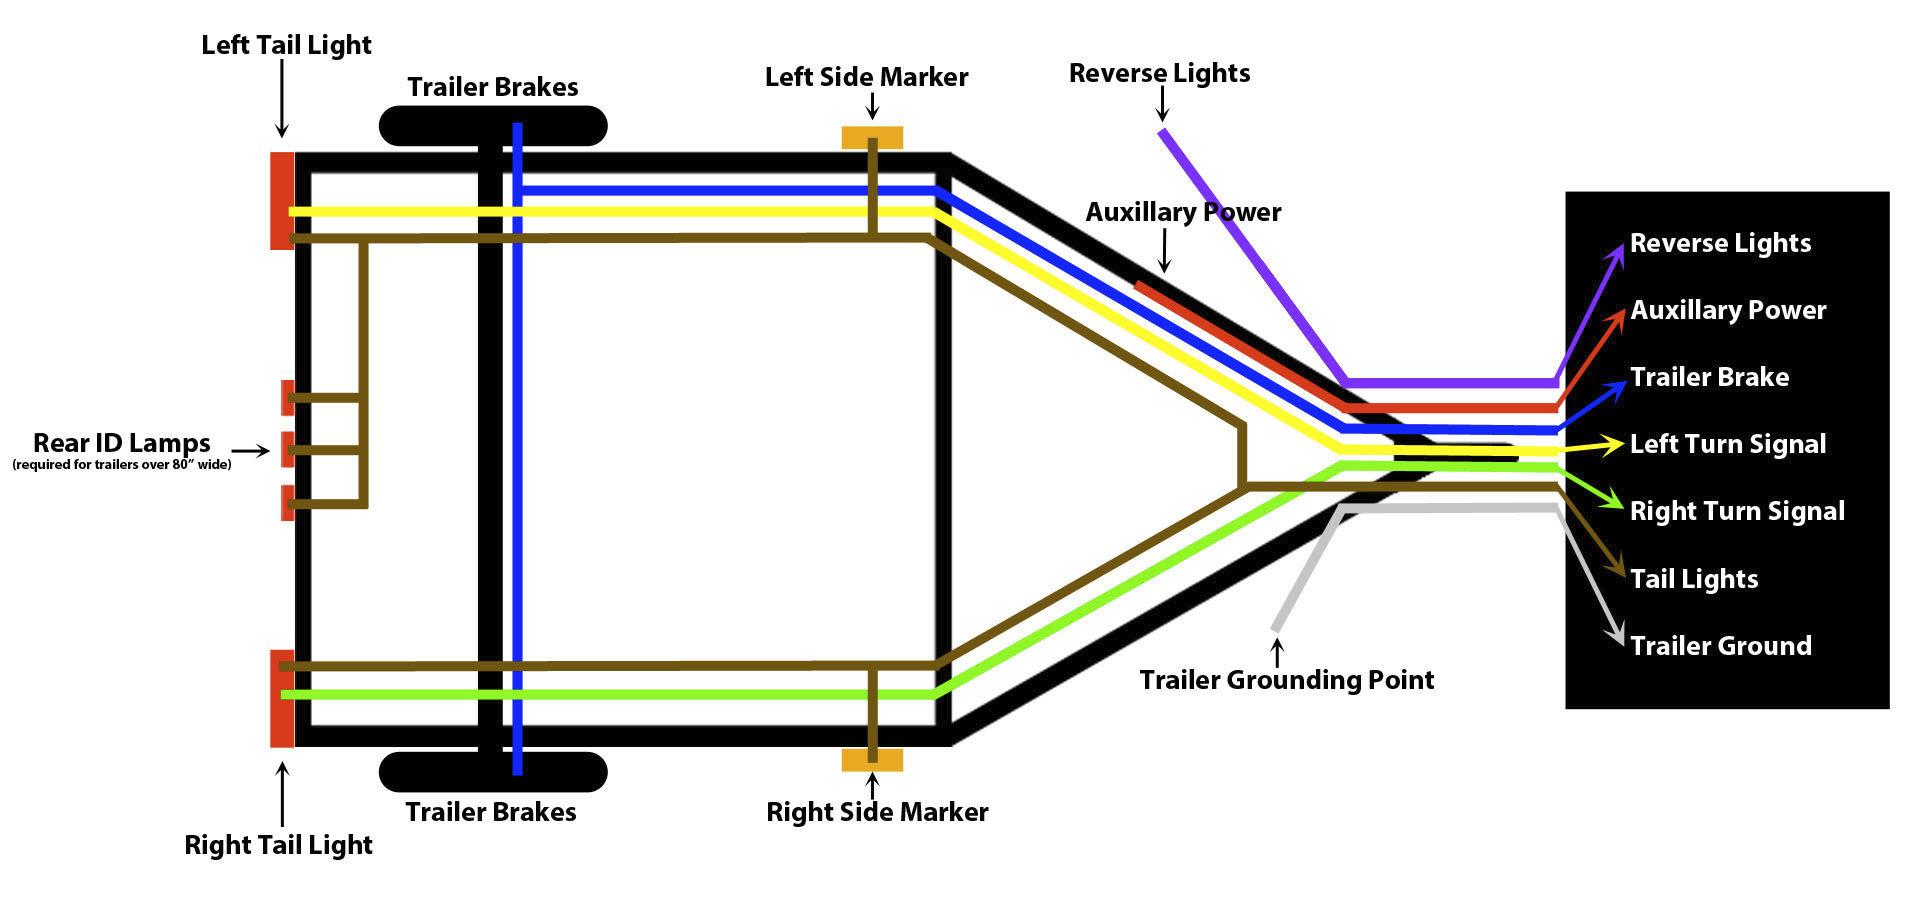 How To Wire Trailer Lights - Trailer Wiring Guide & Videos - Trailer To Truck Wiring Diagram